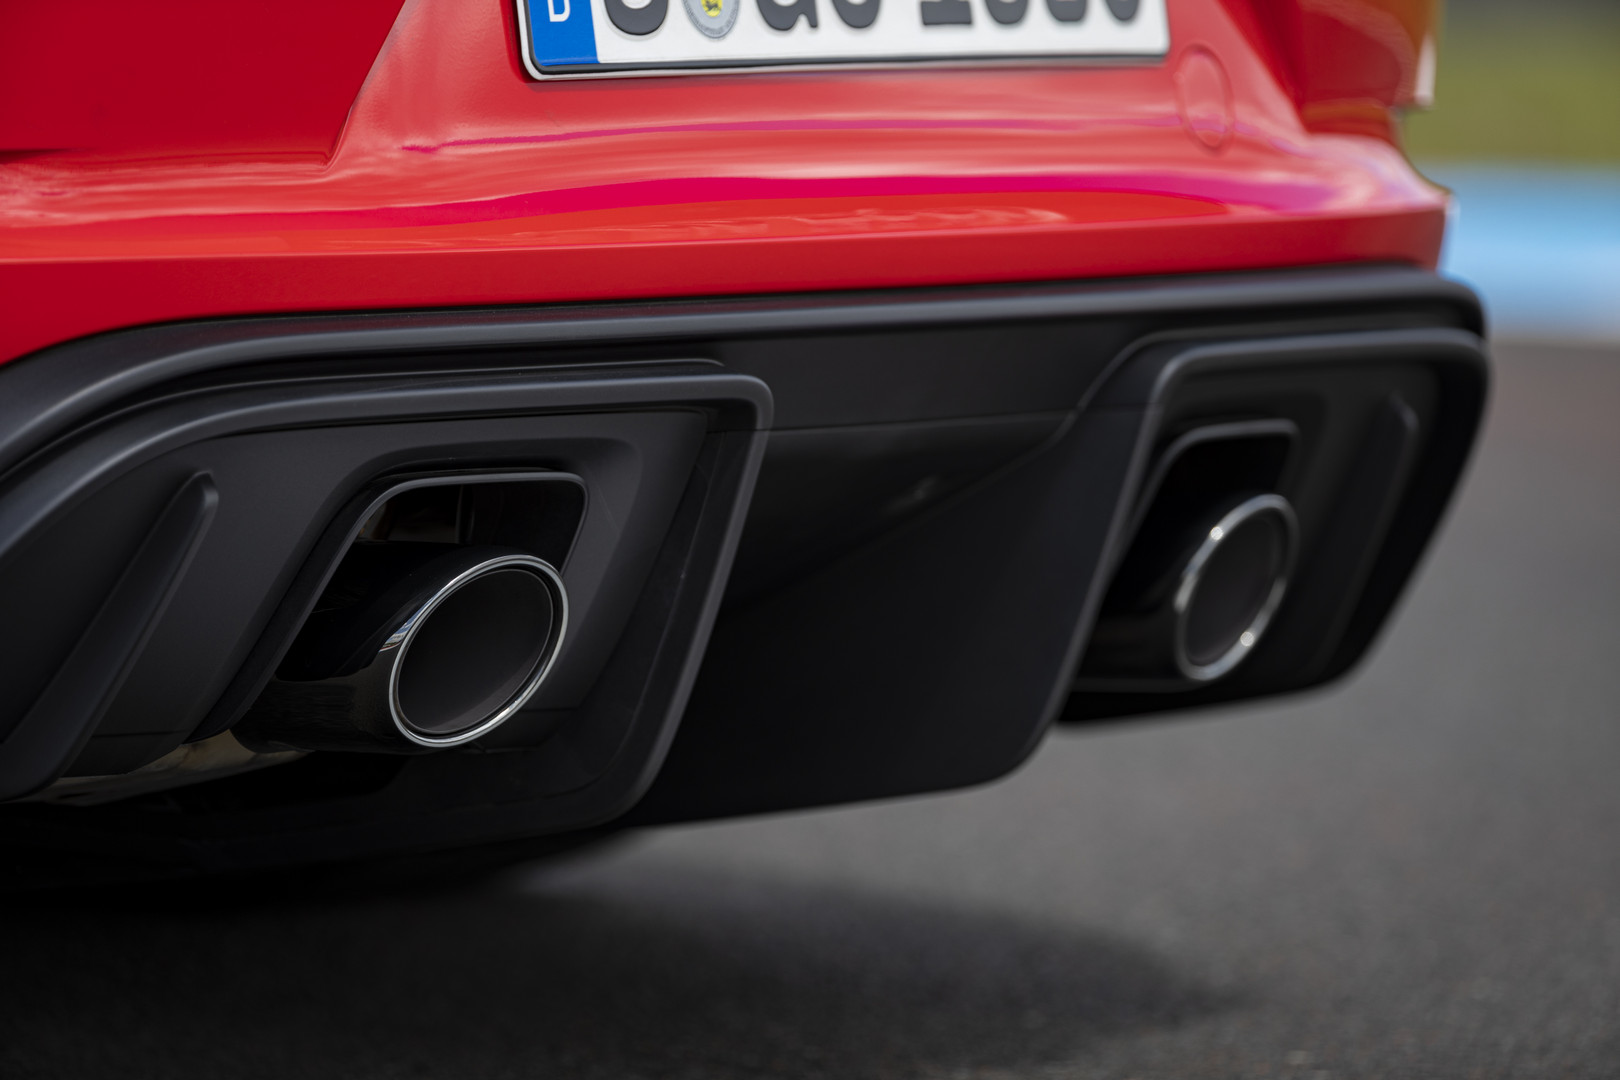 Porsche 718 Cayman GT4 Exhaust Pipes